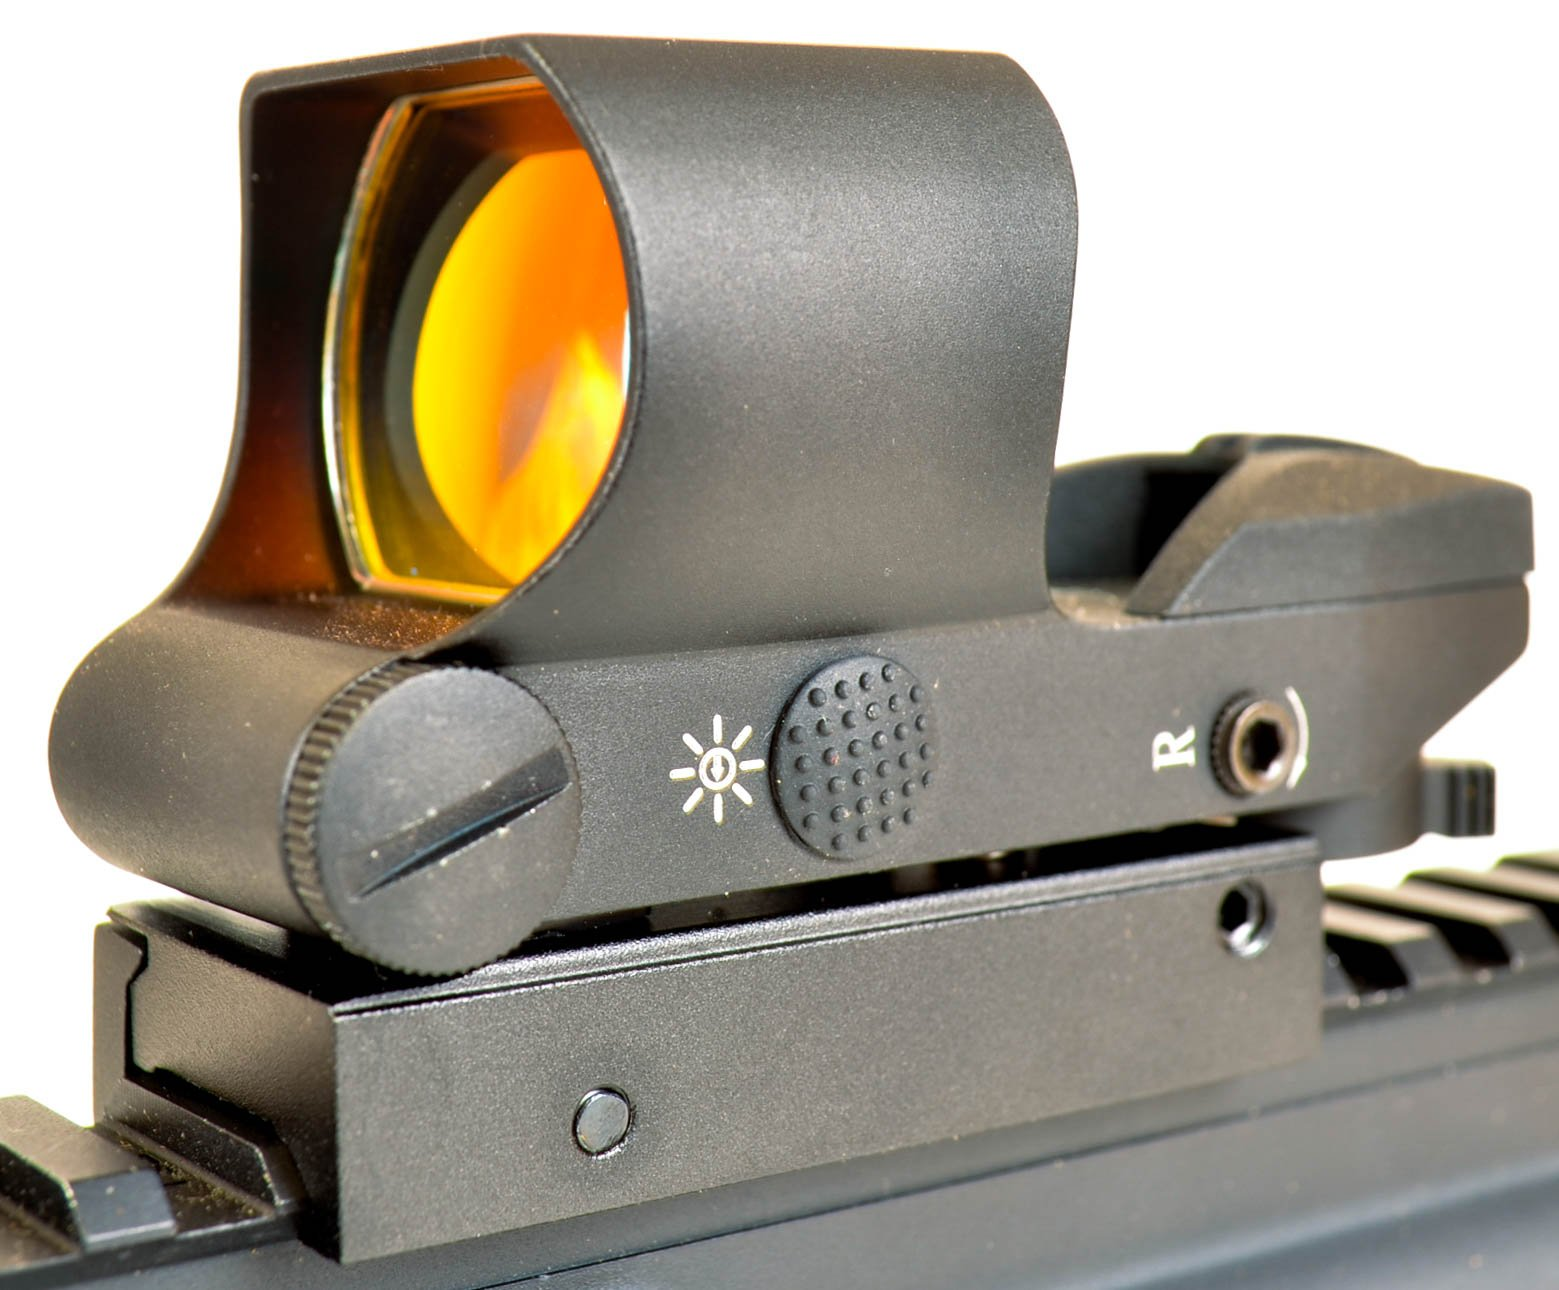 OZARK ARMAMENT Reflex Sight - Rail Mount Co-Witness with Large Sun Shade - Multiple Reticle System by OZARK ARMAMENT